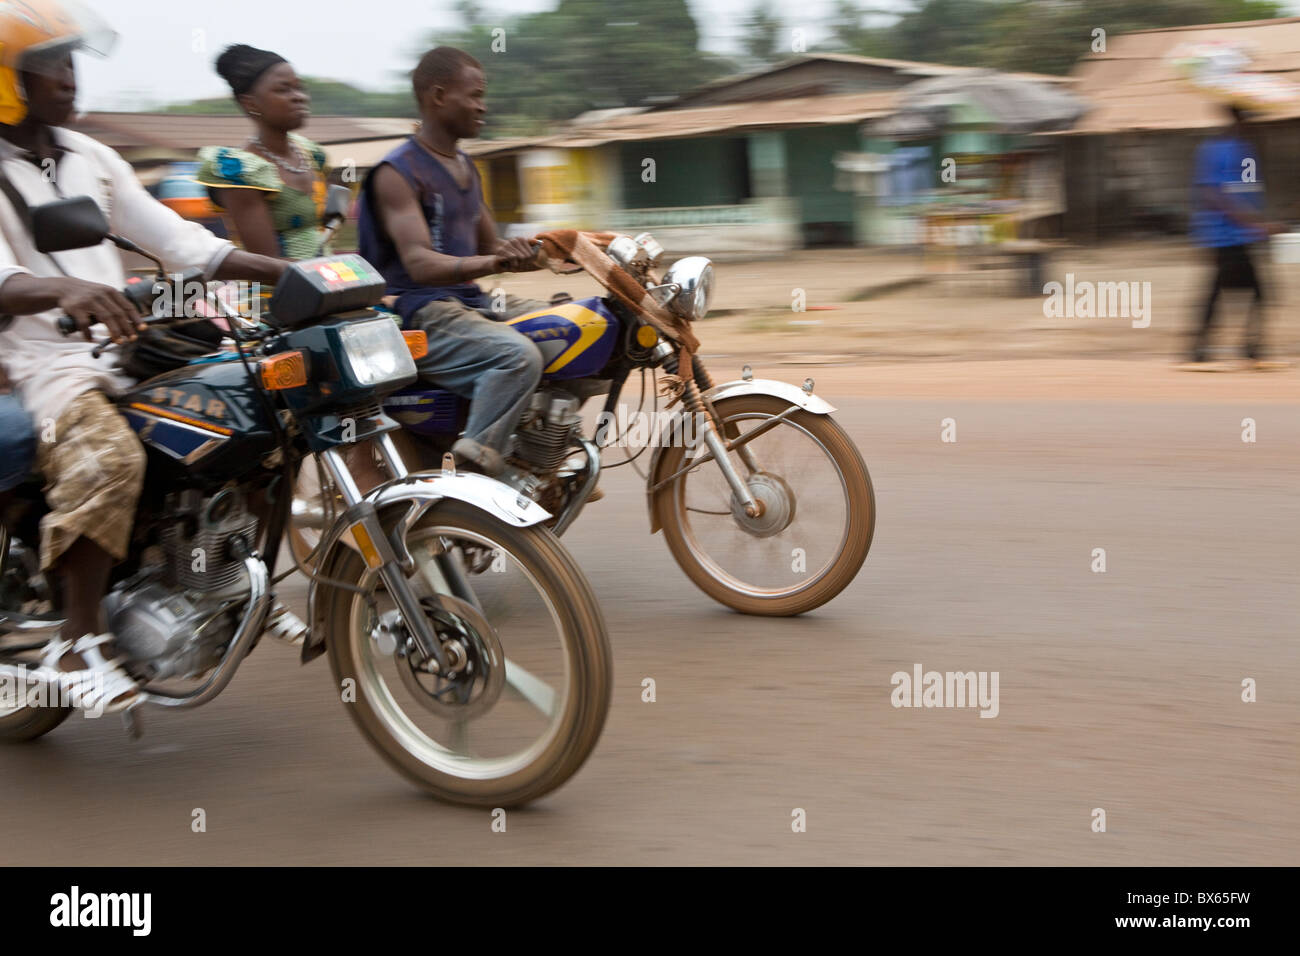 Motorcycles speed down a street in Monrovia, Liberia, West Africa. - Stock Image